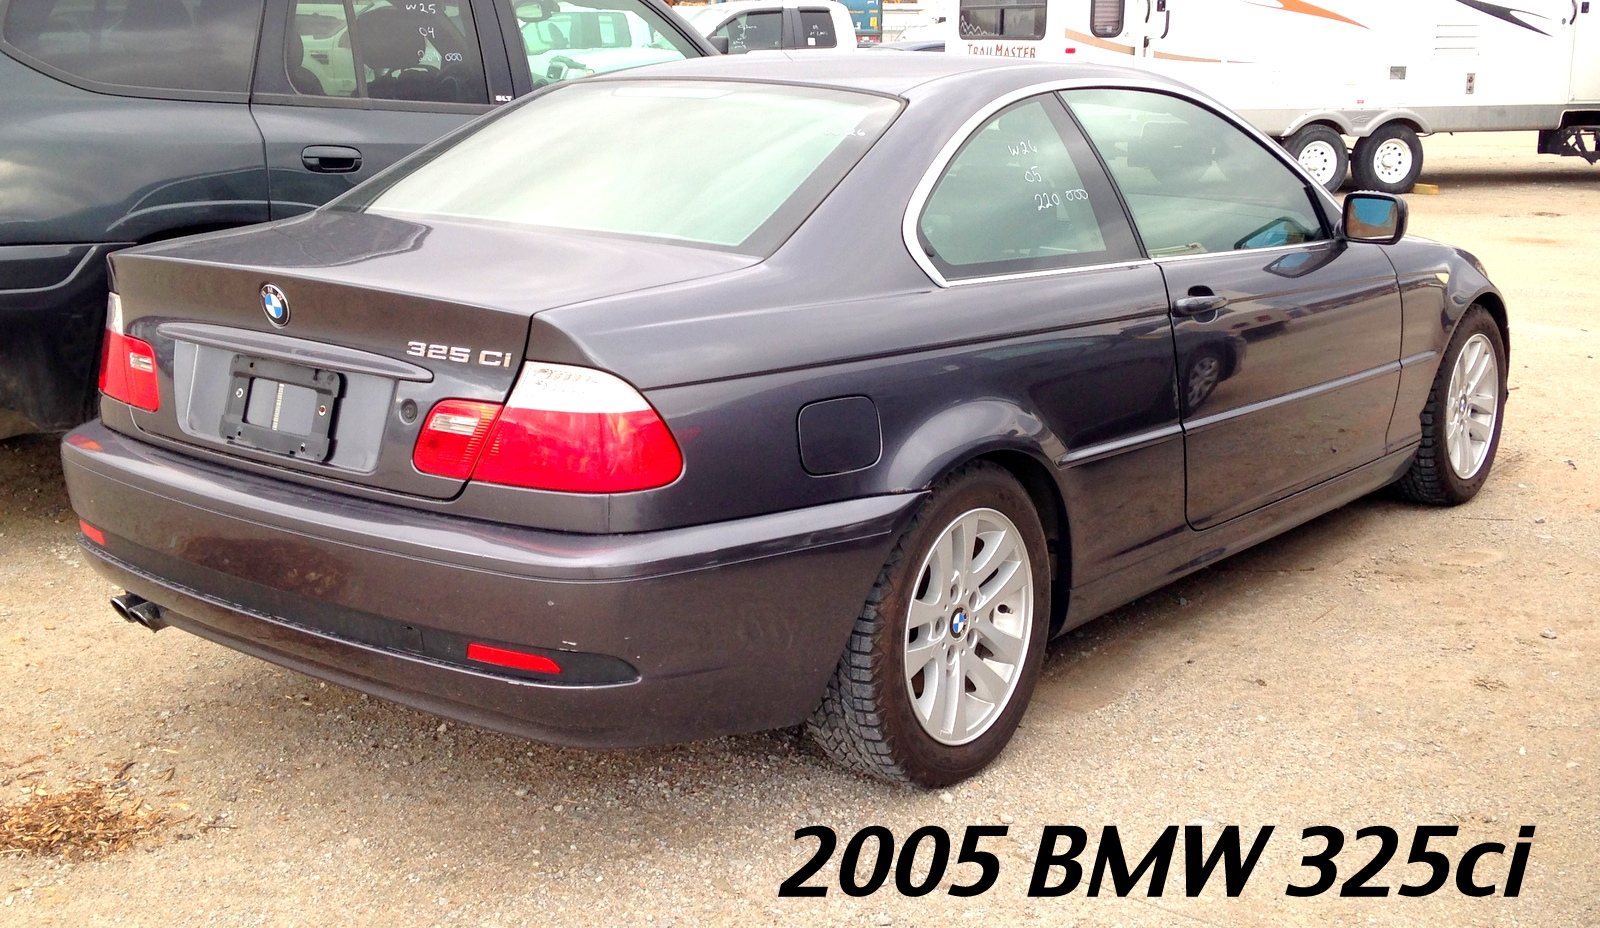 The 2005 Bmw 325ci That Was Almost Mine